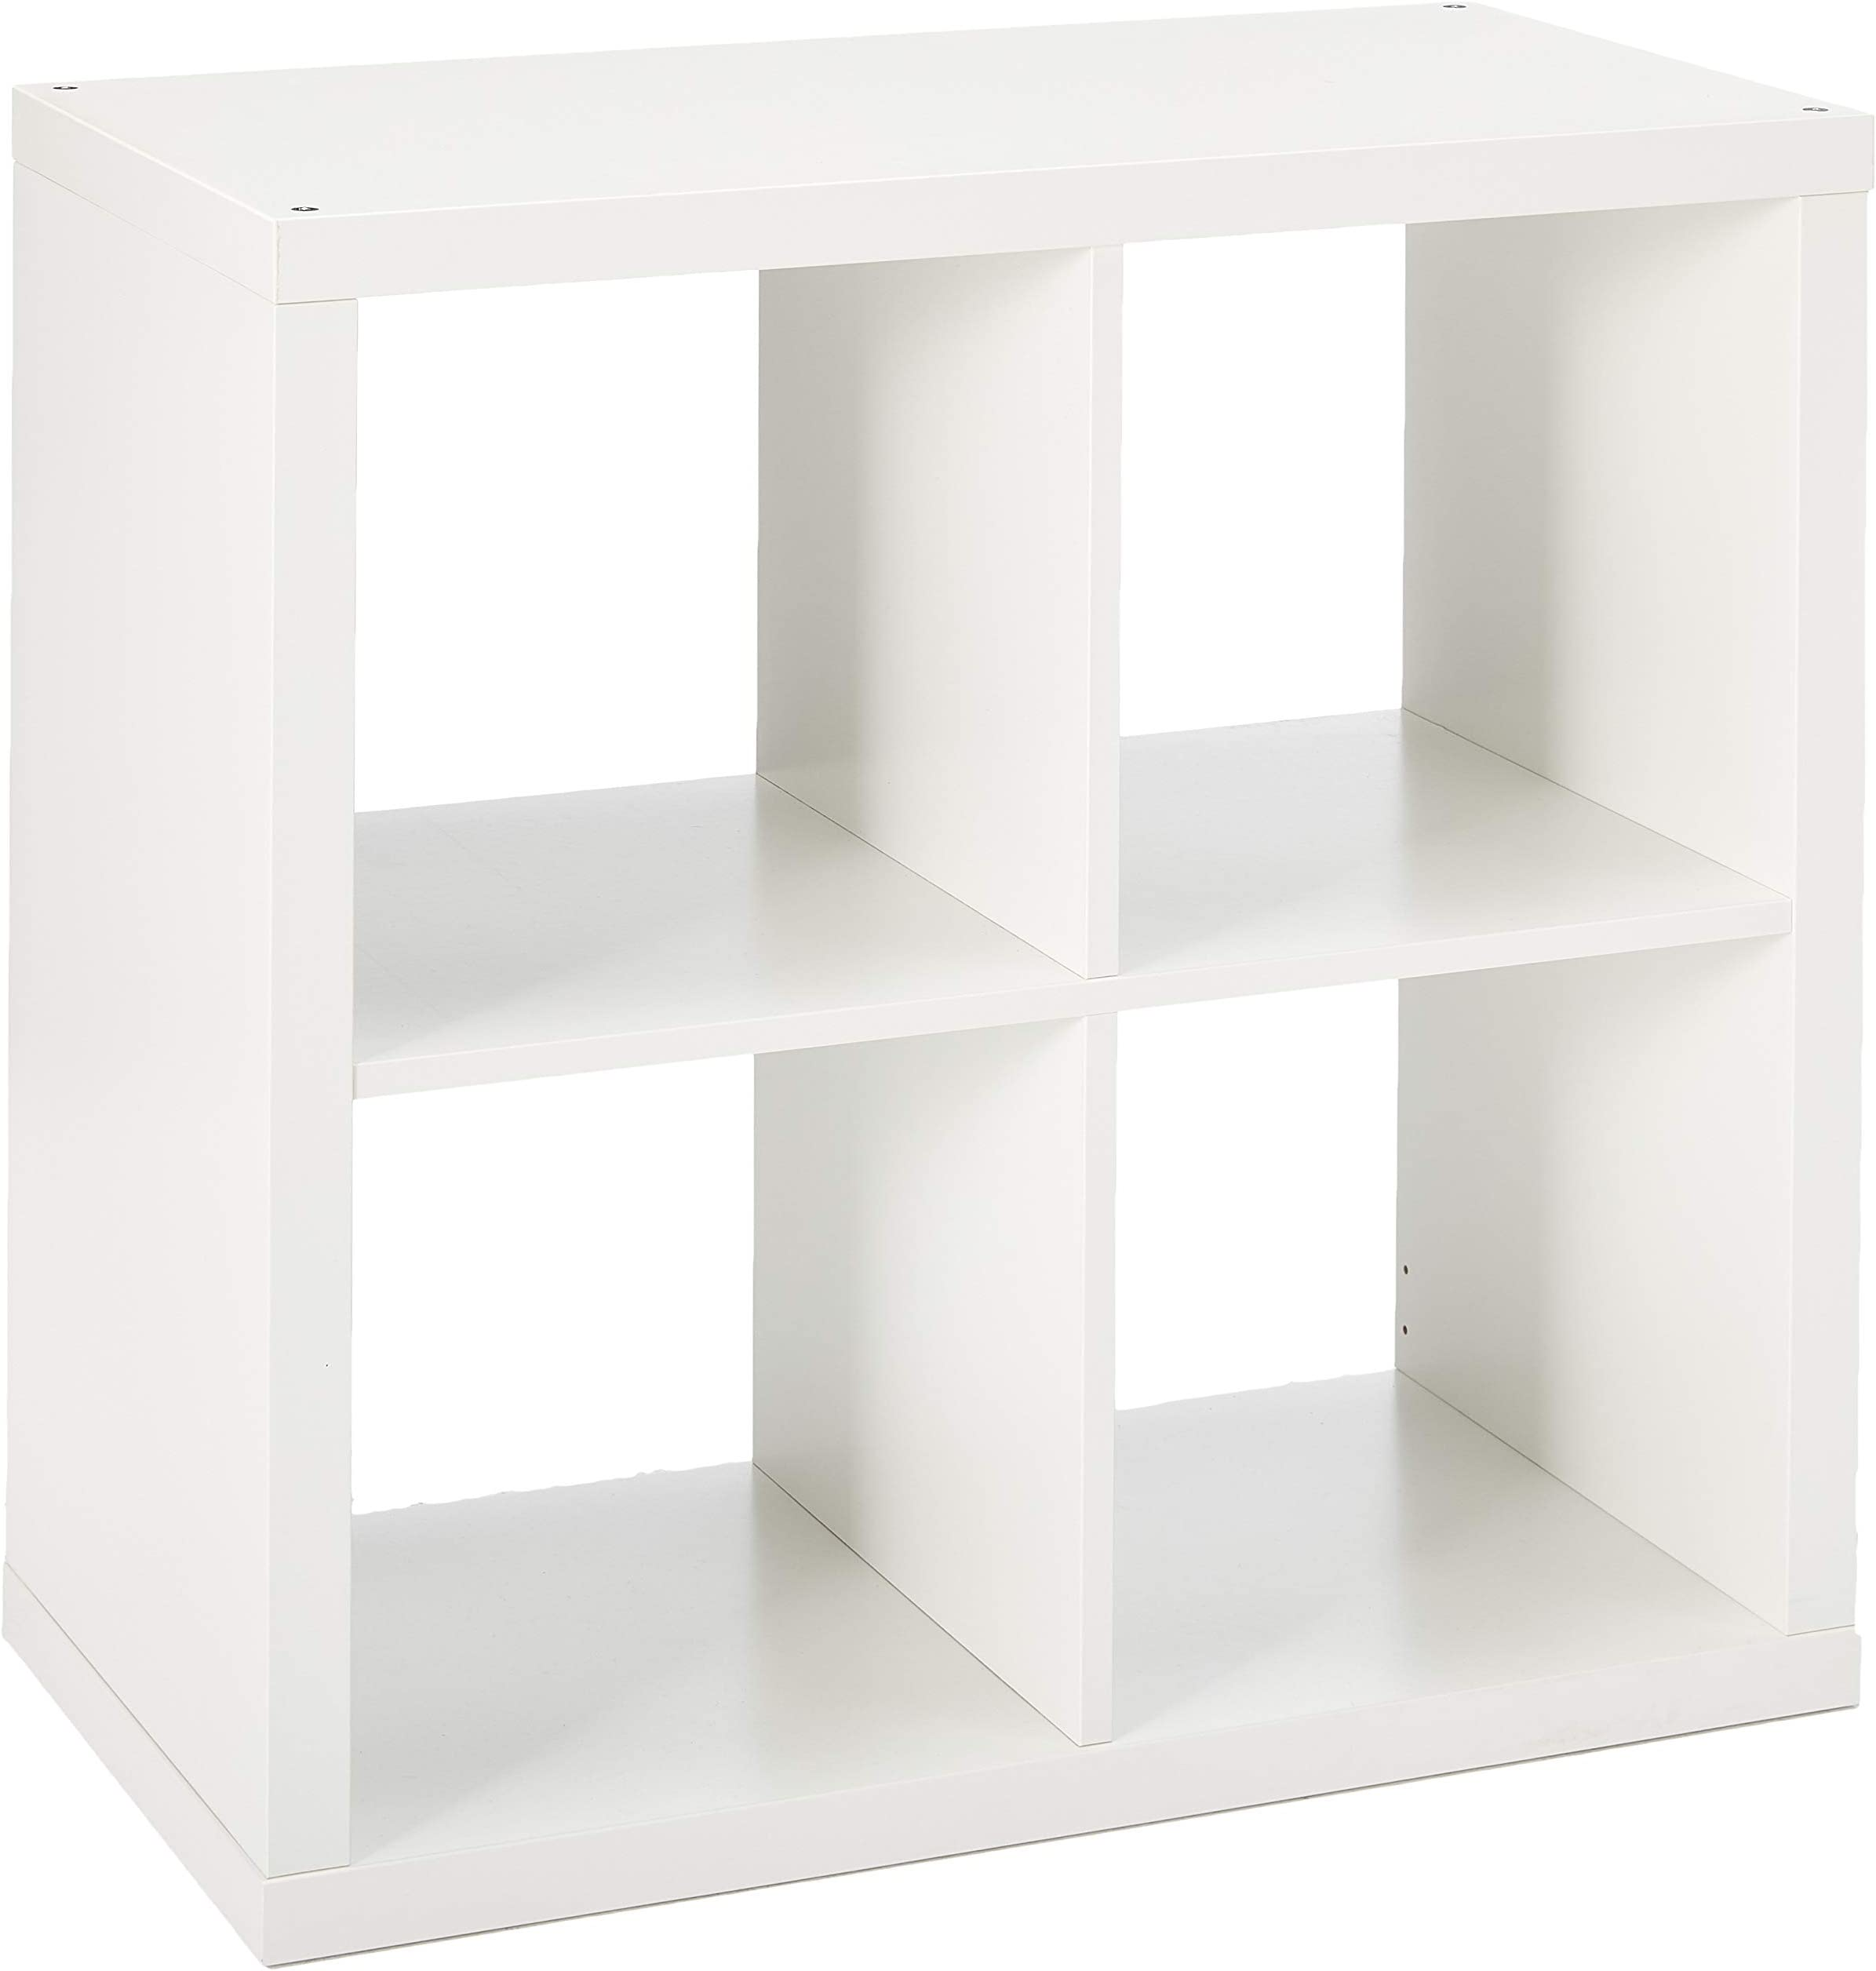 Shelving Units *Not For Sale*